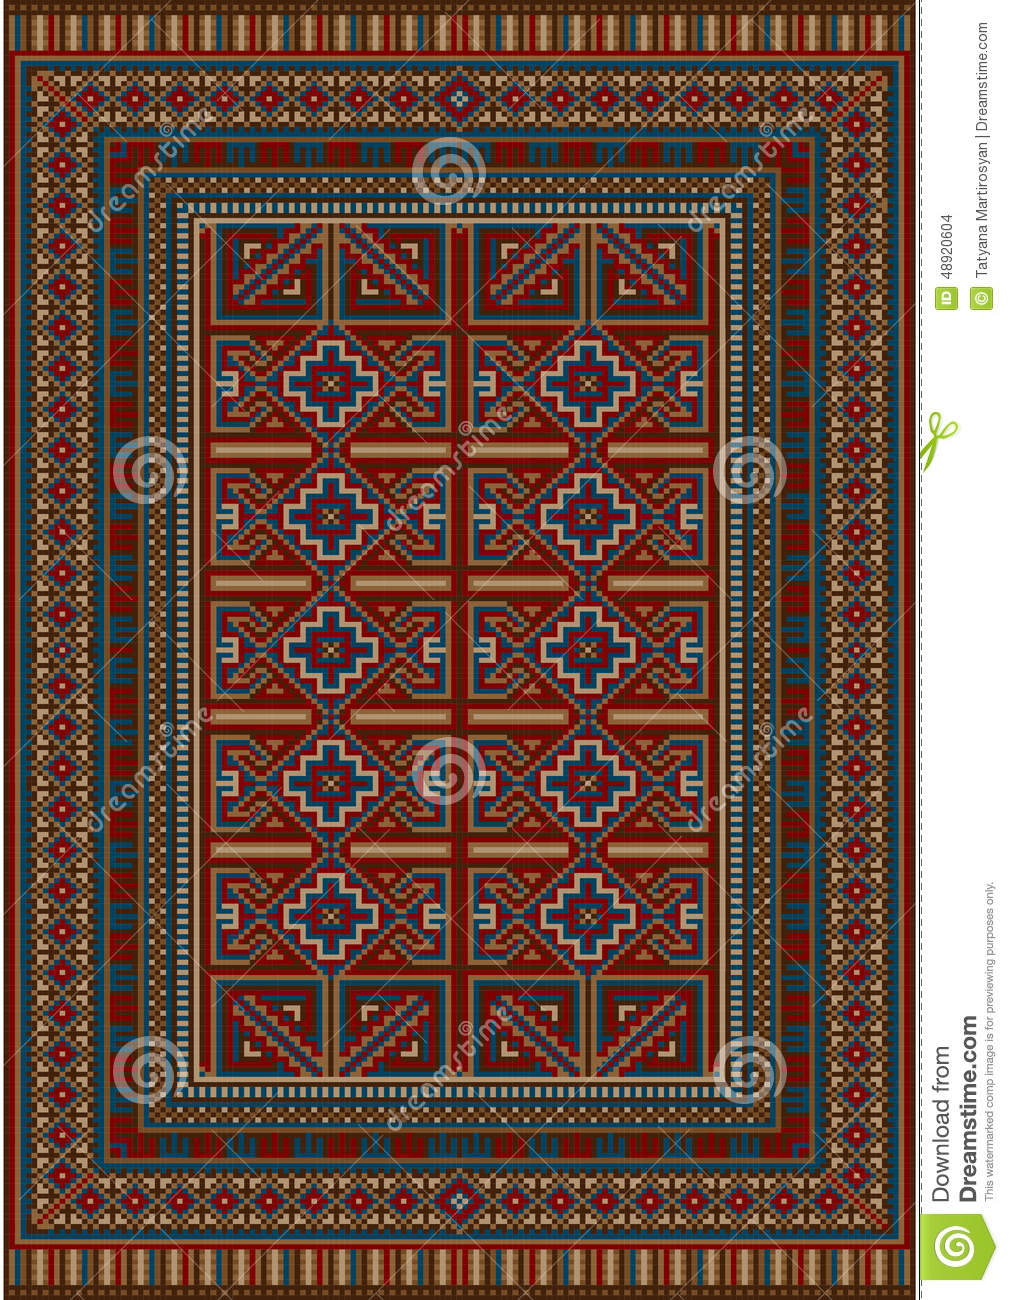 Vintage Carpet Decorated With Geometric Designs Stock